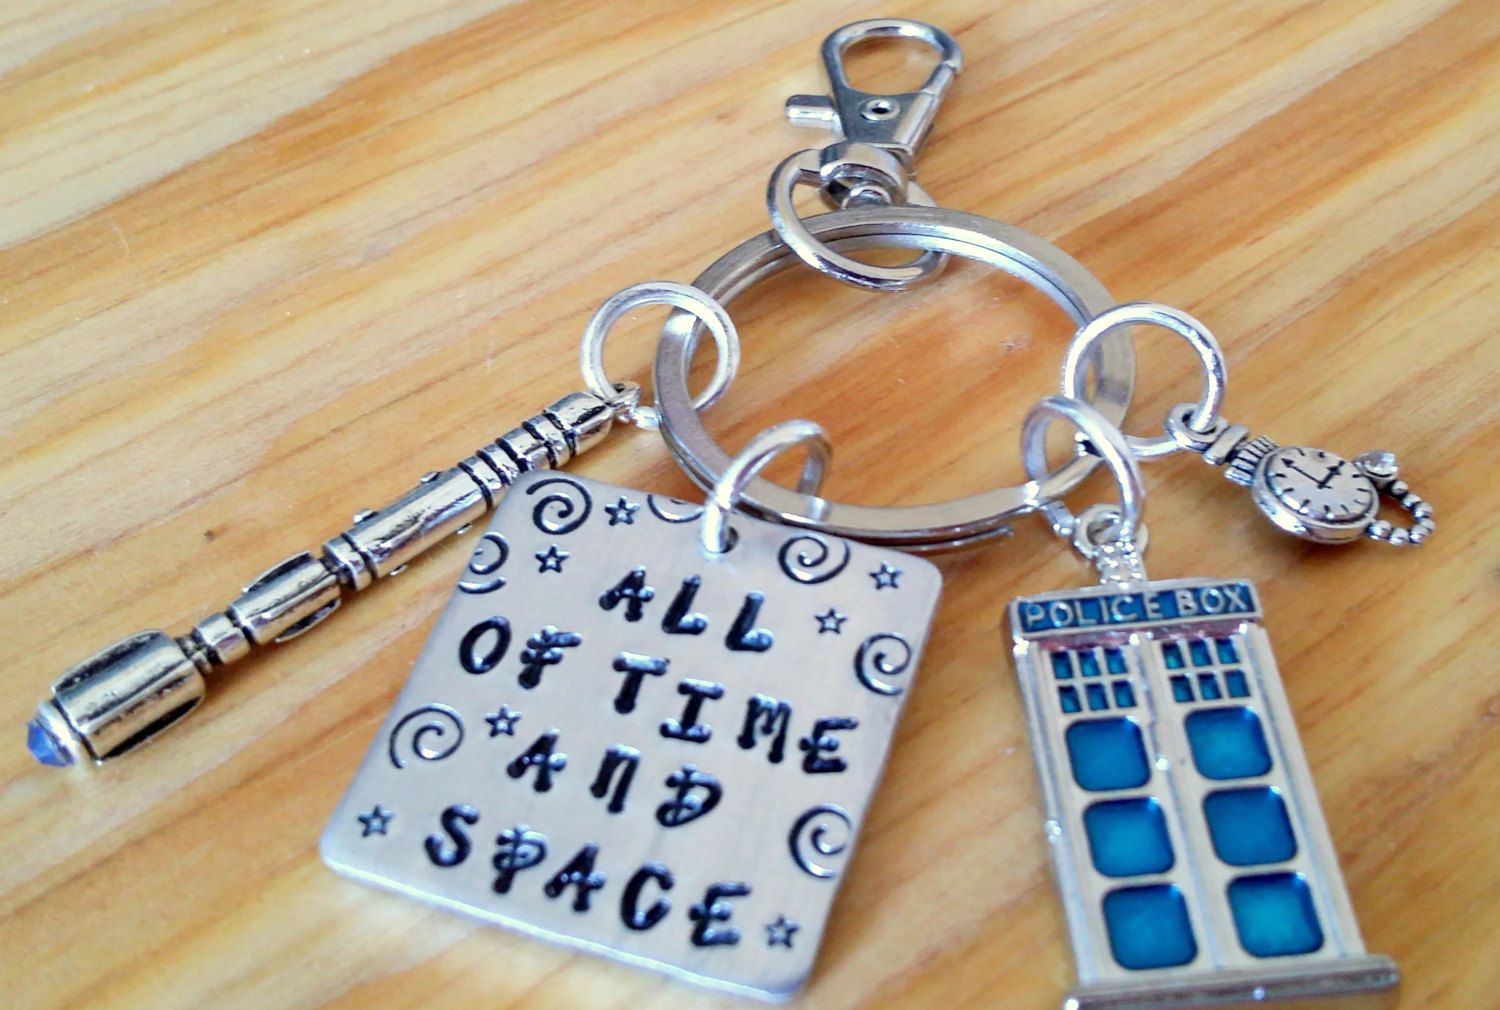 Hand Stamped Doctor Who Inspired All Of Space and Time Key Chain with Tardis and Sonic Screwdriver Charms by BlueMoonFlowerDesign on Etsy